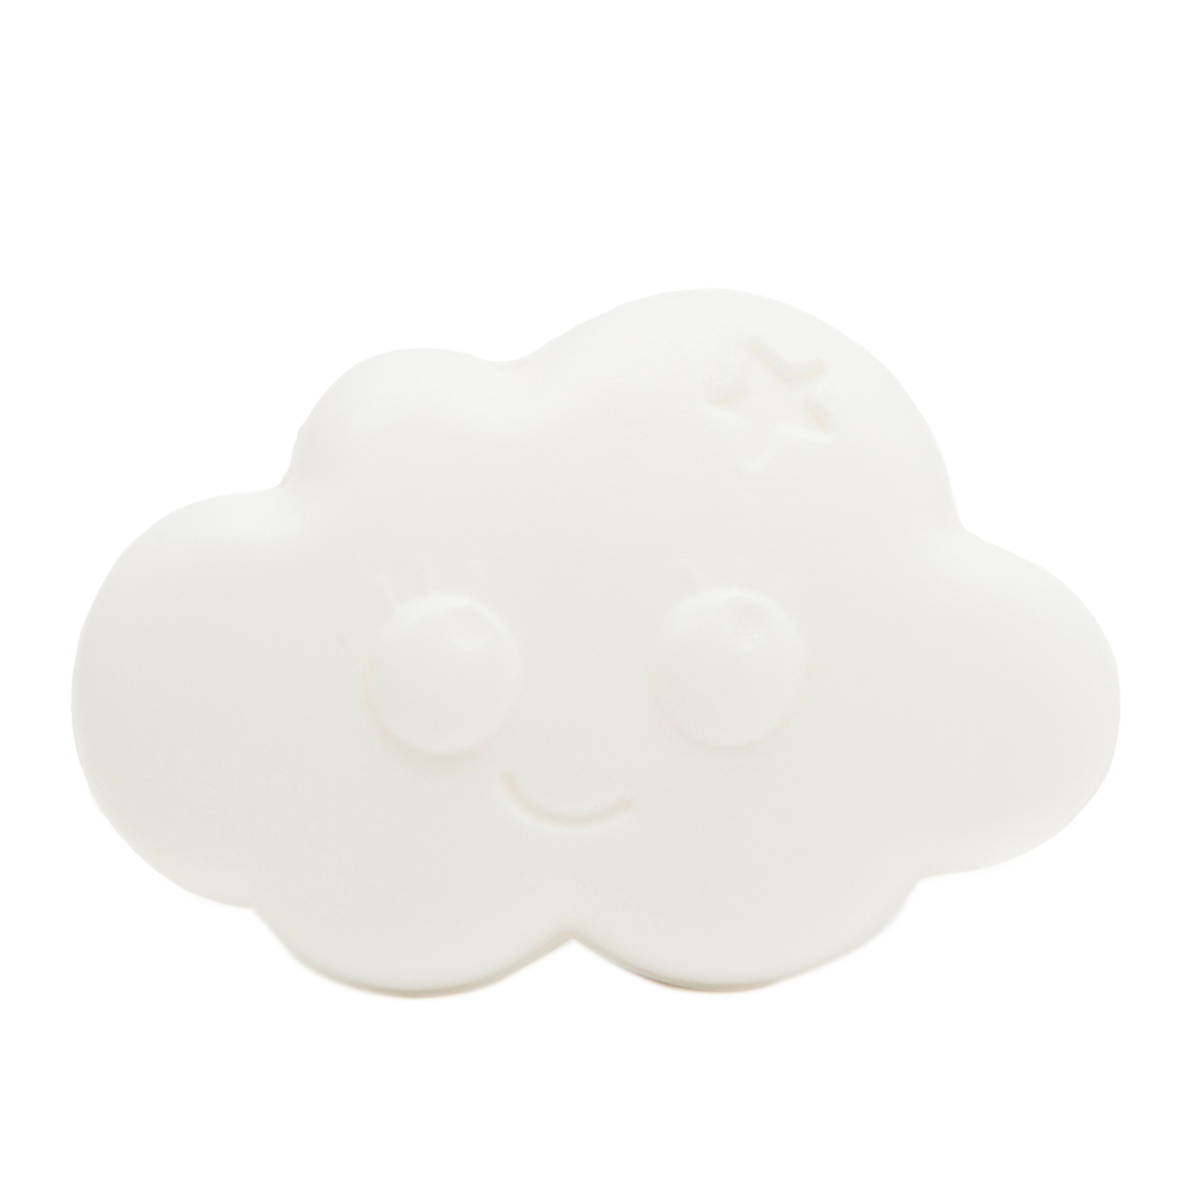 Organic Kids Cloud Soap - Pineapple Coconut